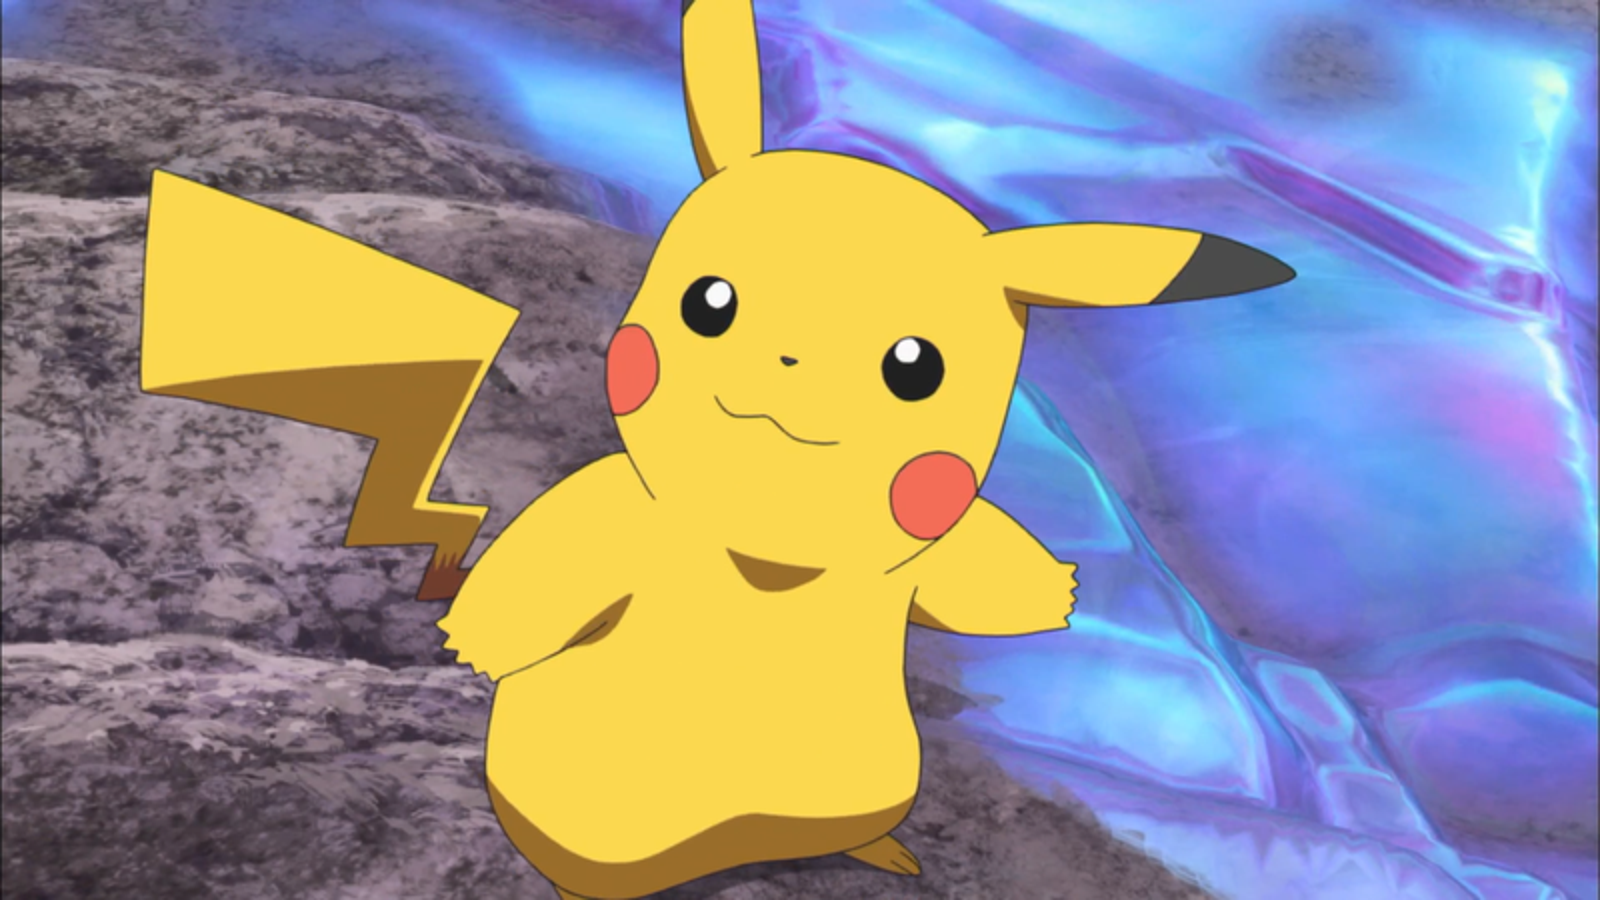 Fans Are Buzzing About A Possible Pokémon Switch Leak